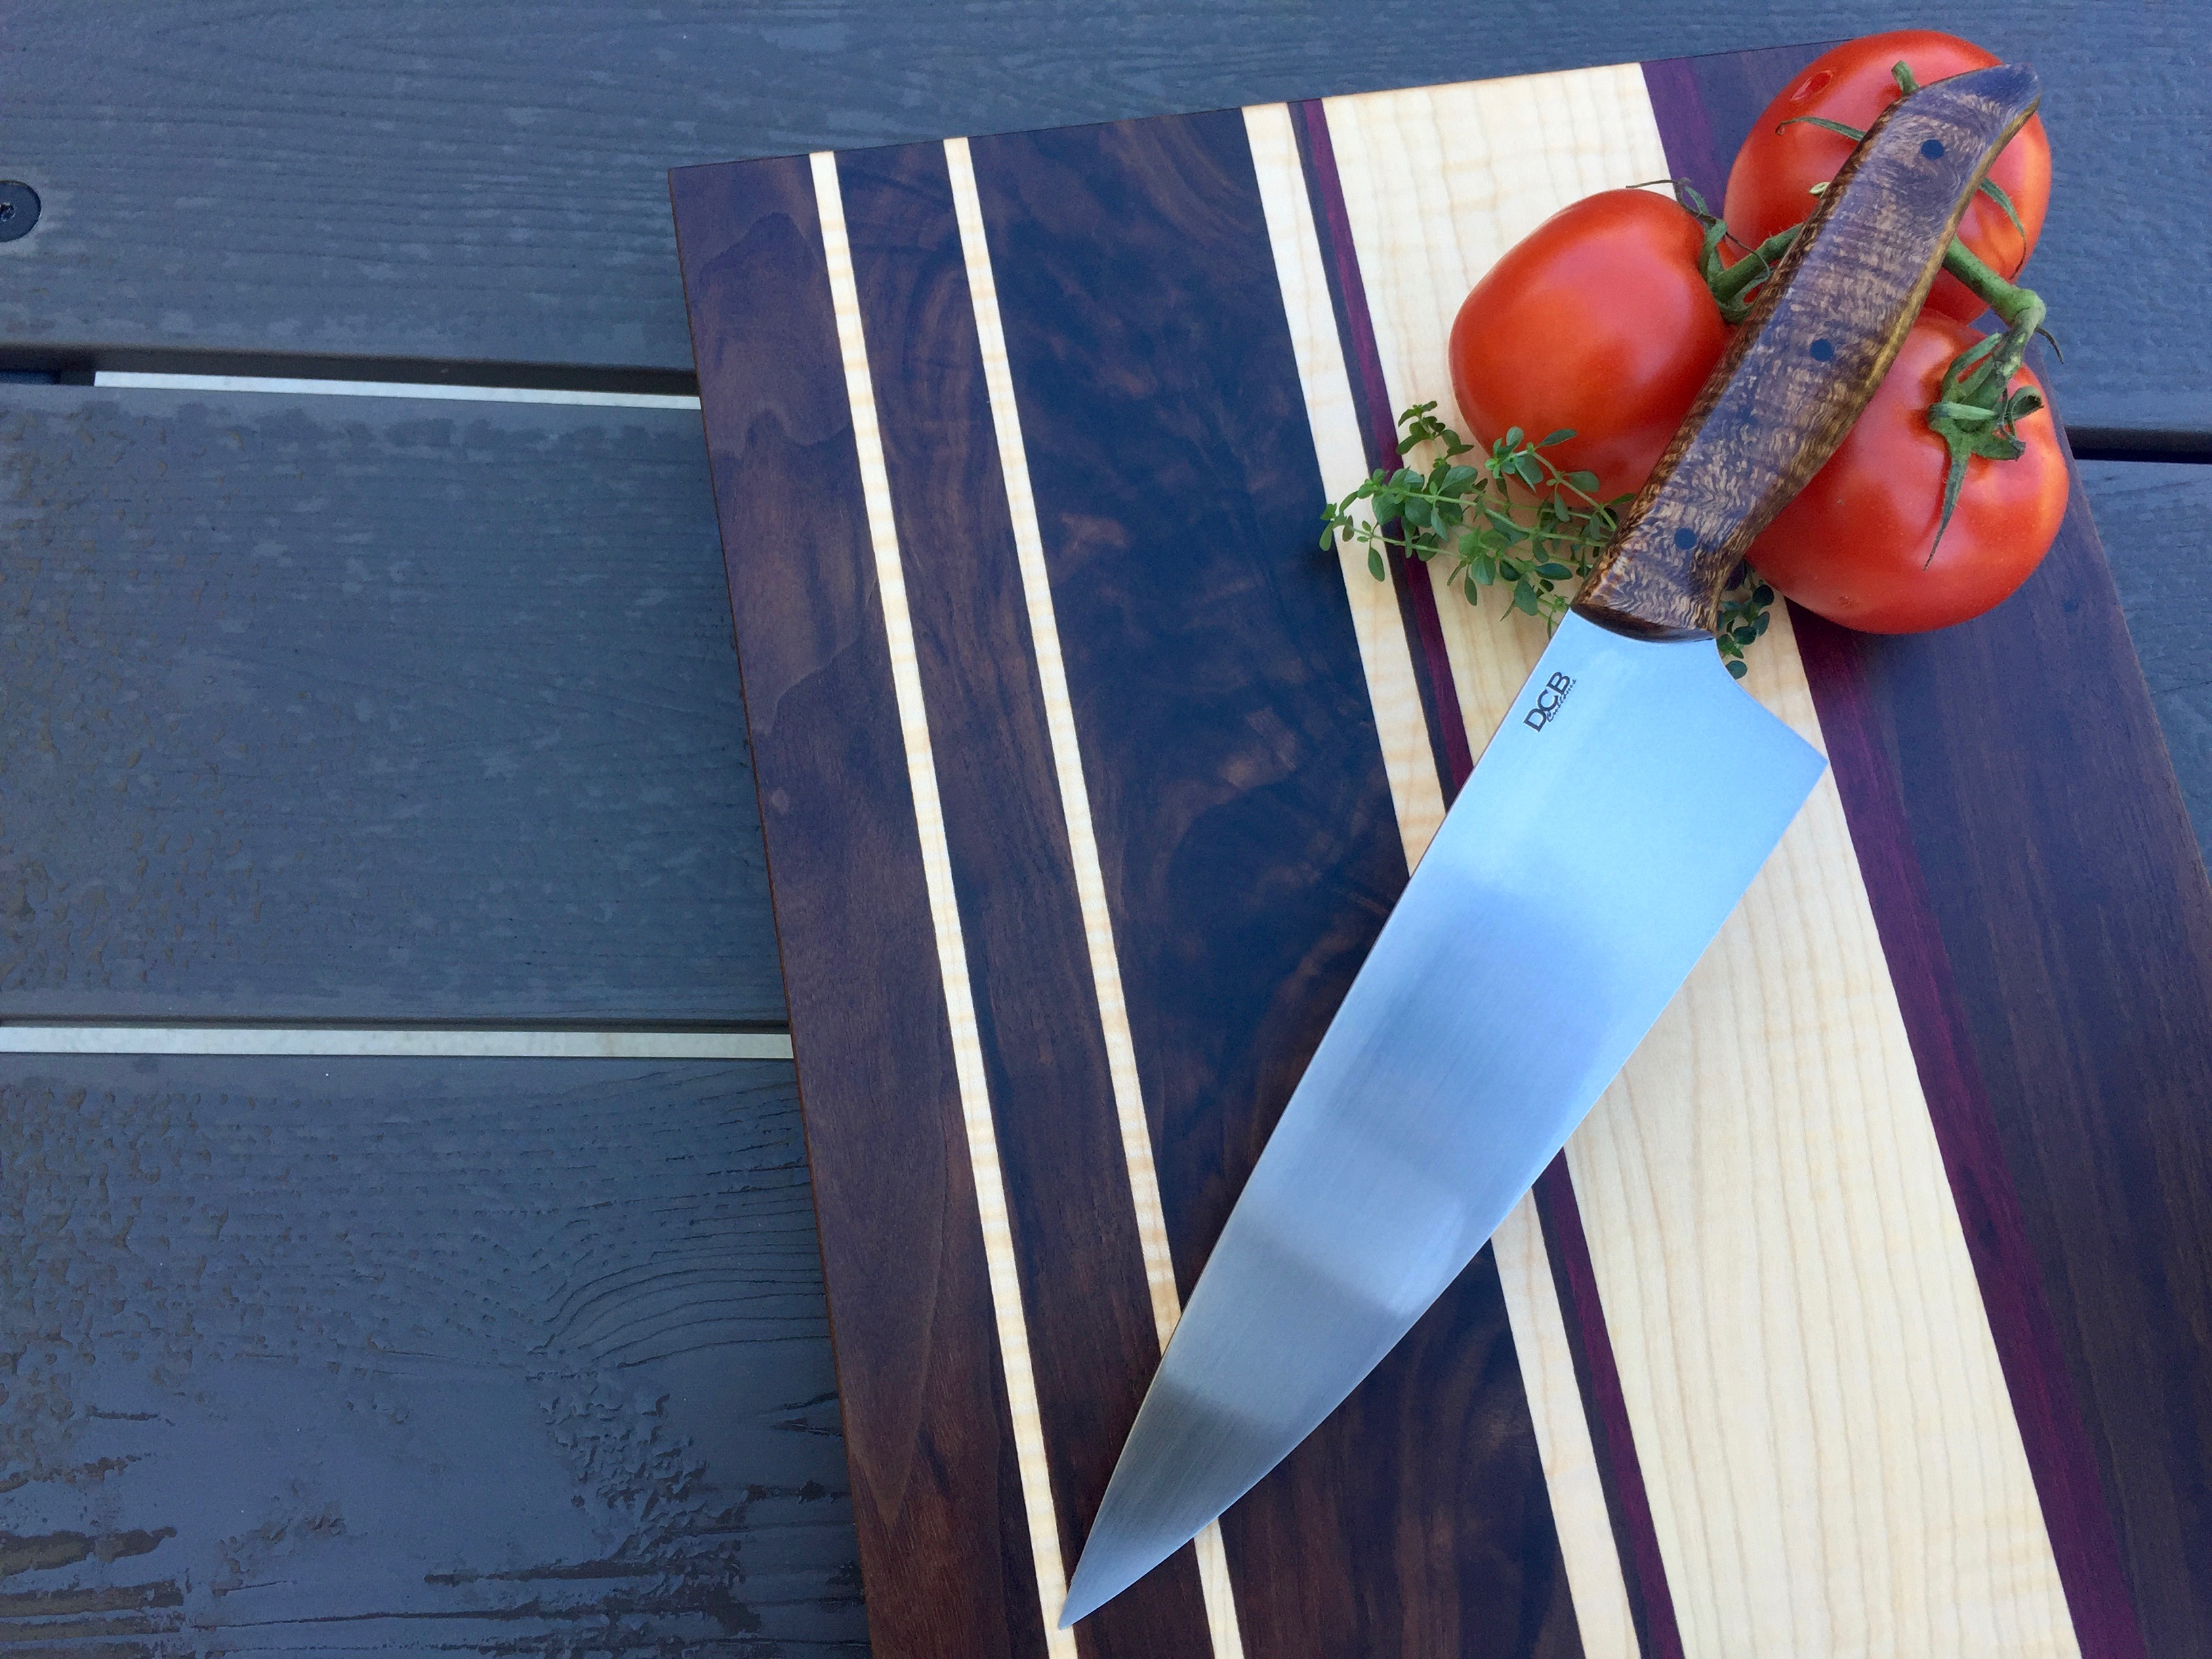 Koa Chef and Figured Board